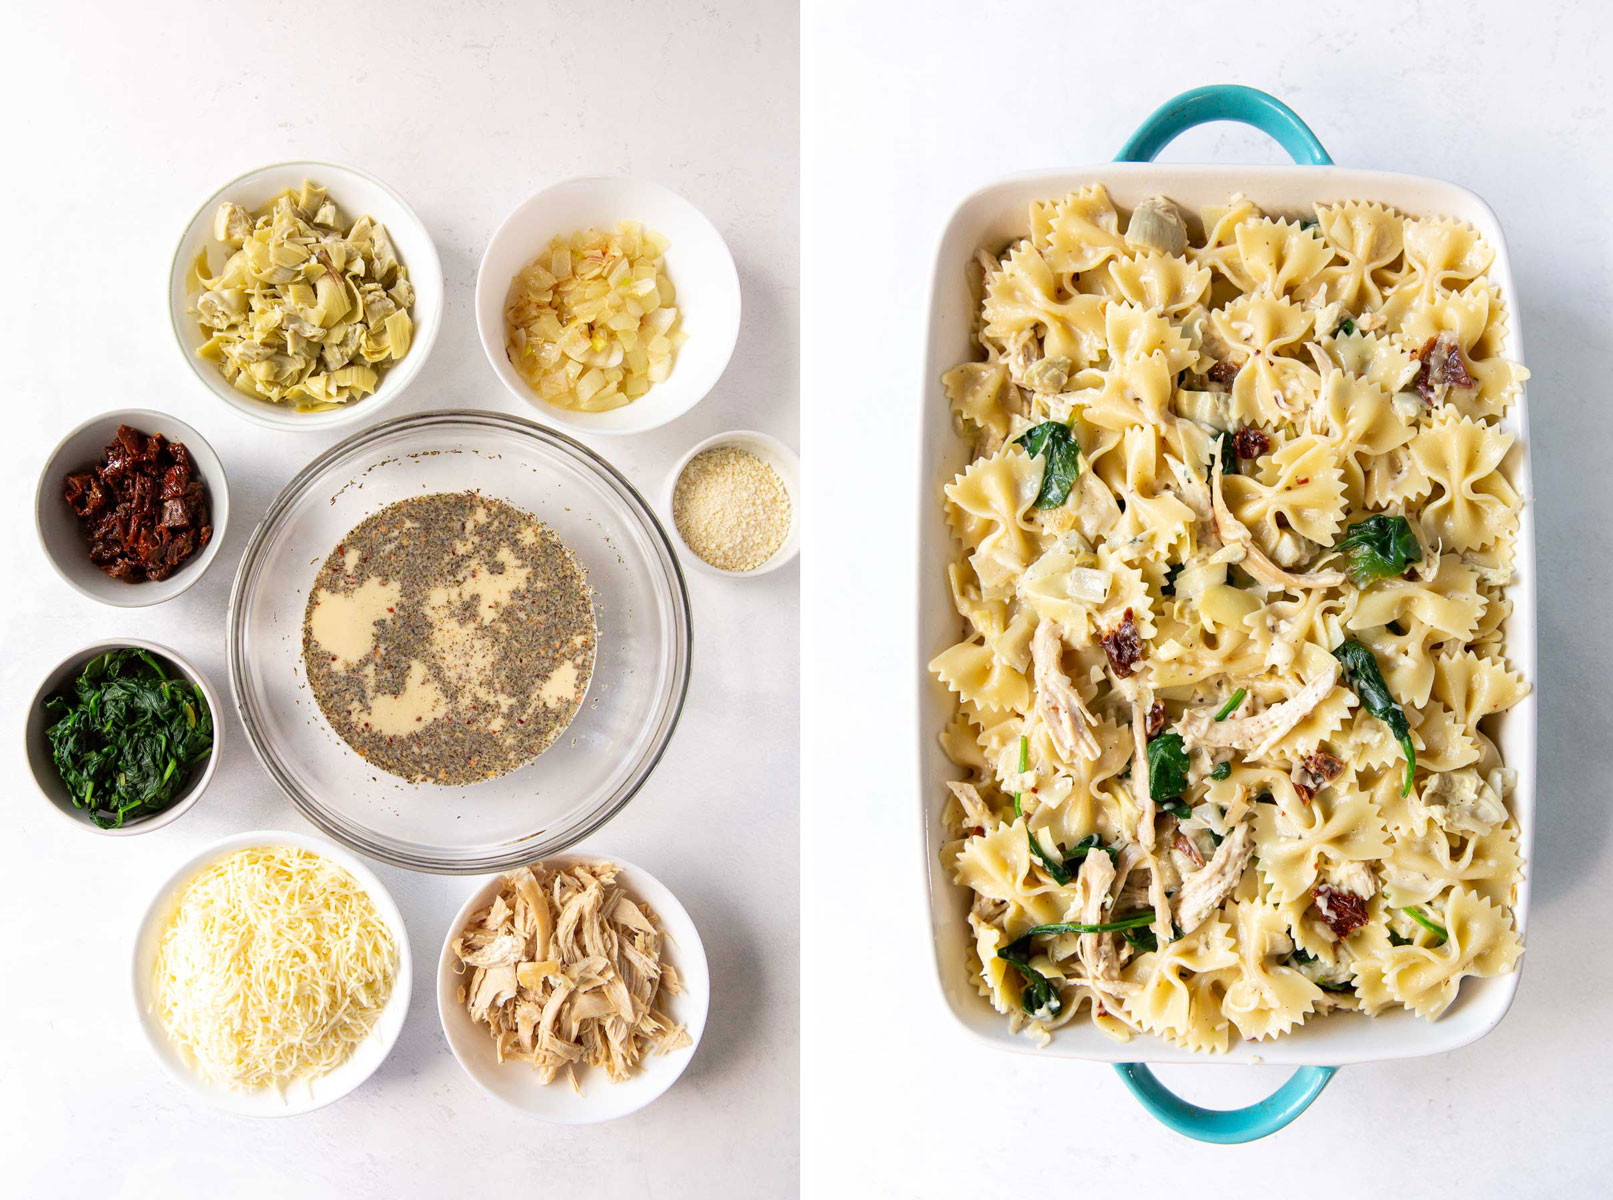 side by side photos showing recipe ingredients separately and then mixed in baking dish